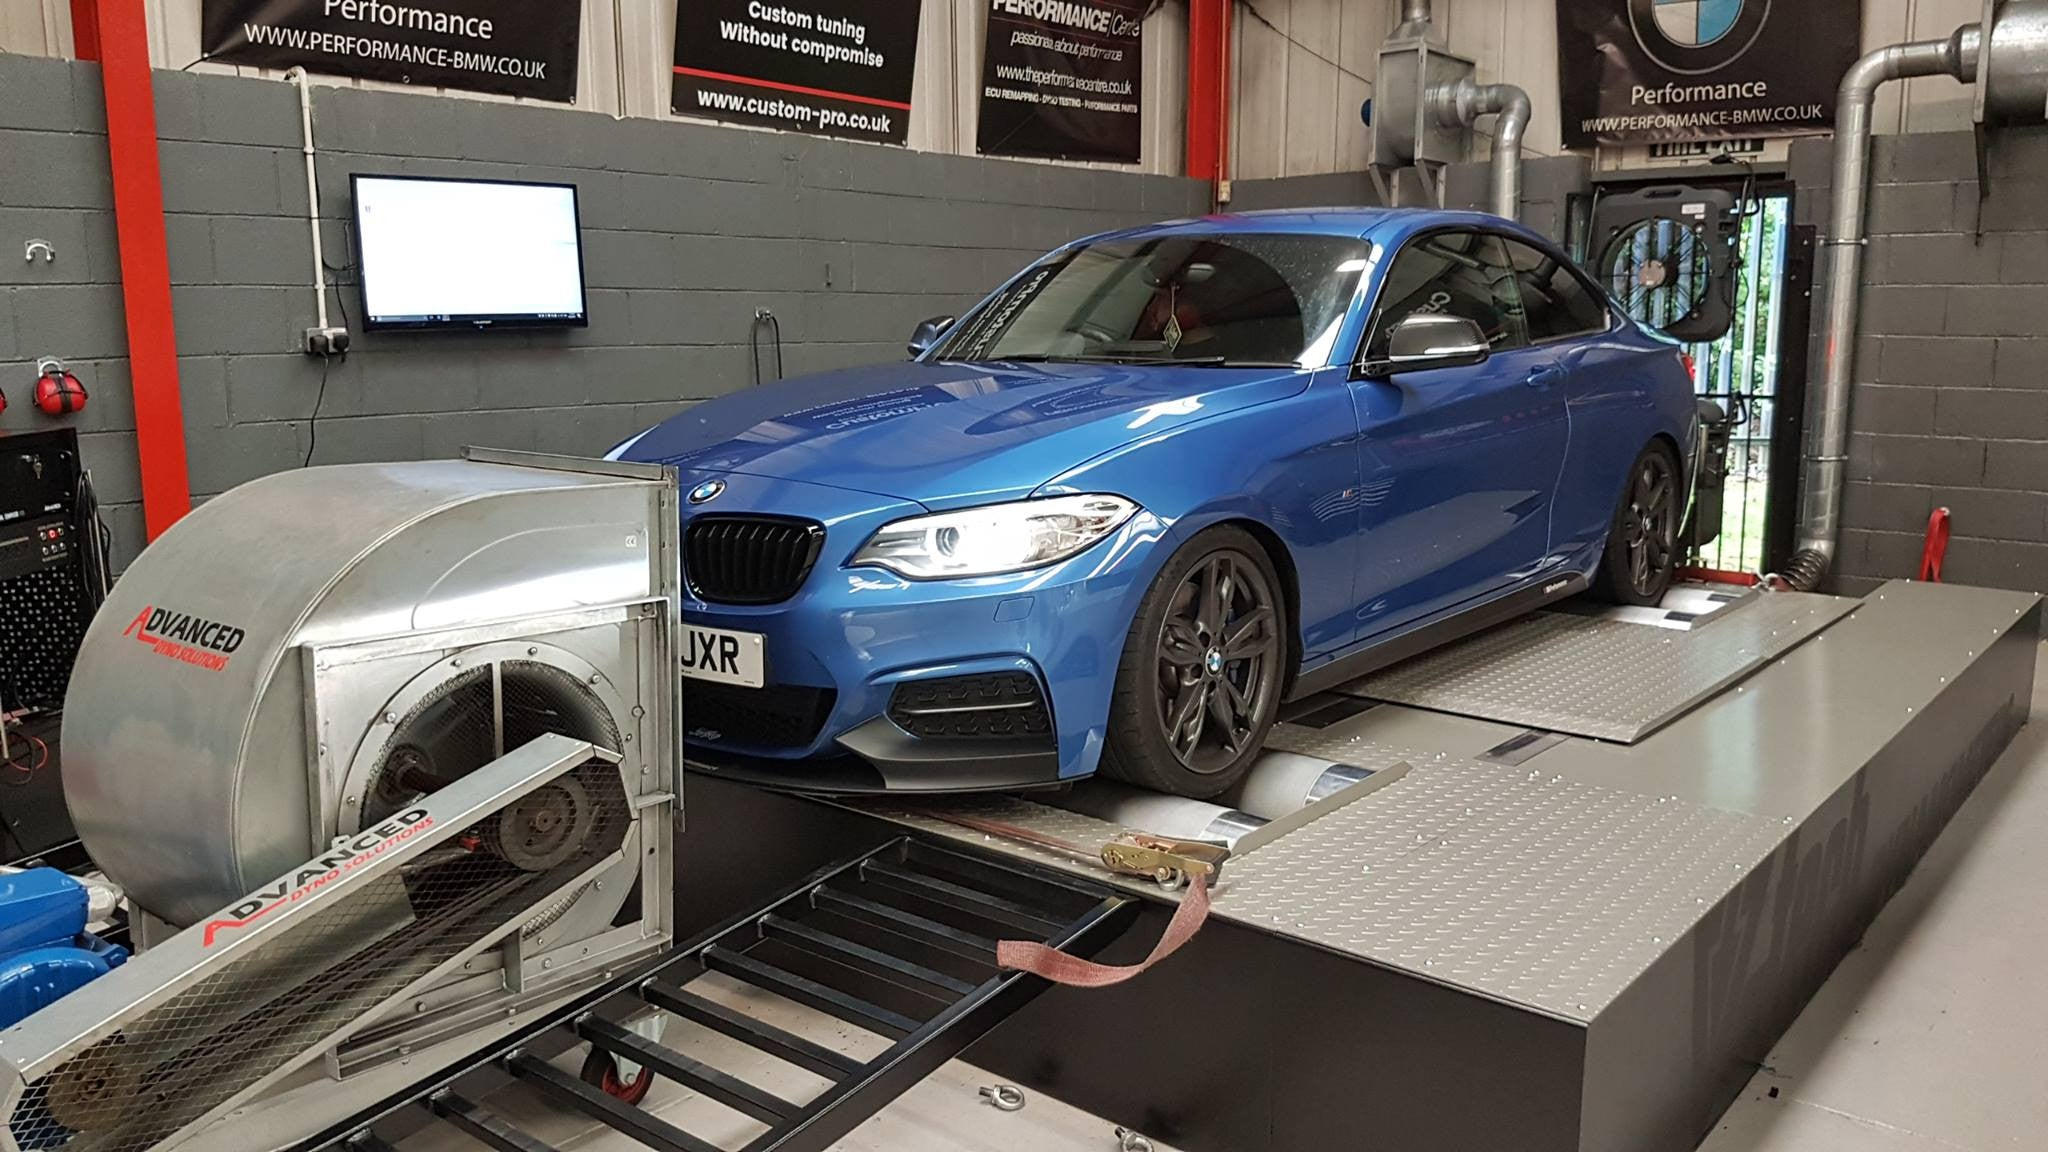 BMW M235i - JB4, Decat downpipe and rolling road testing